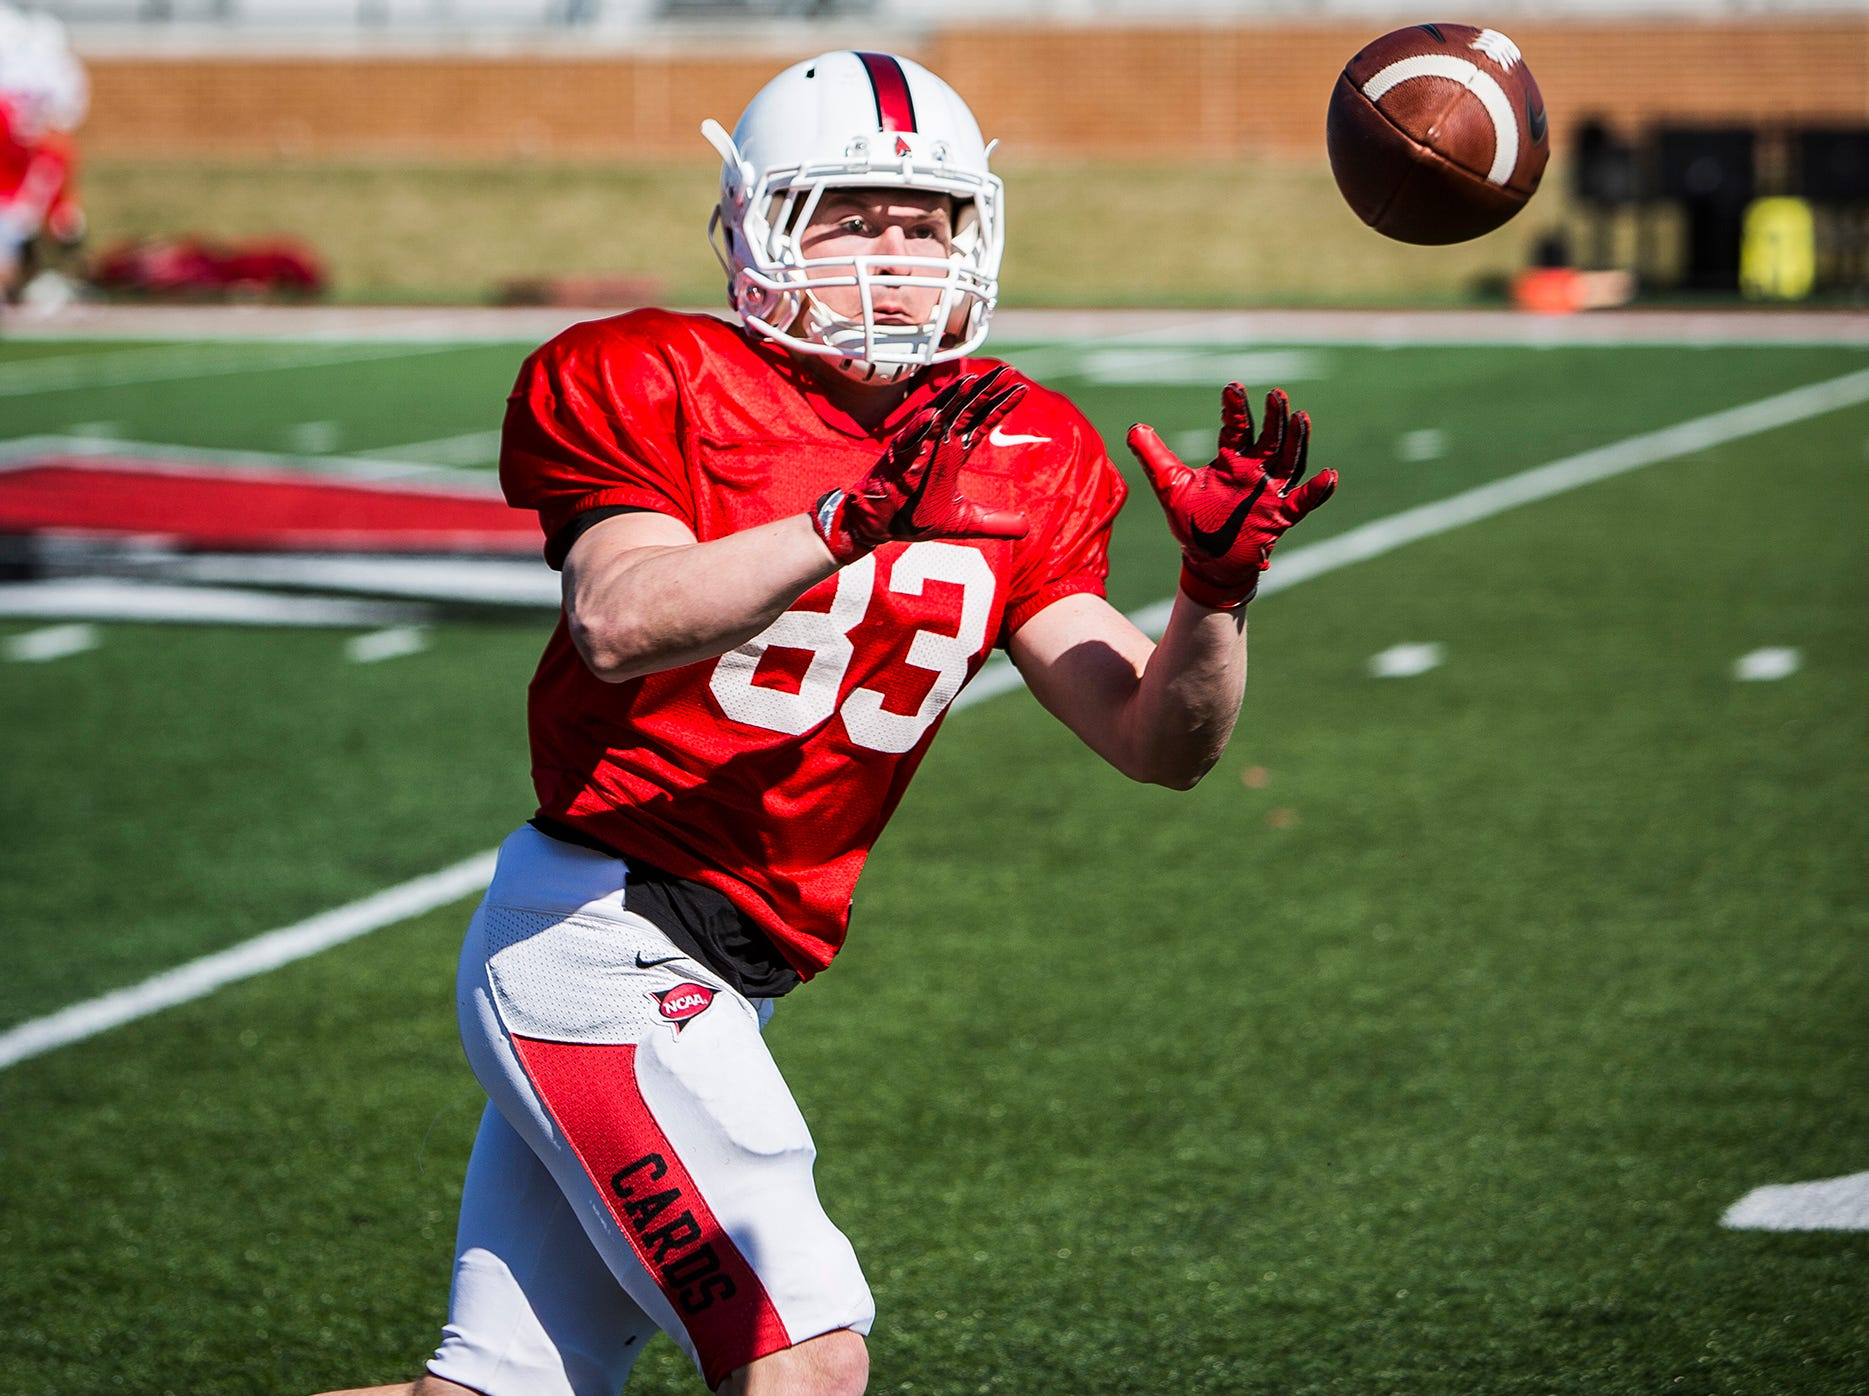 Ball State's Luke Endsley catches during a practice at Scheumann Stadium.